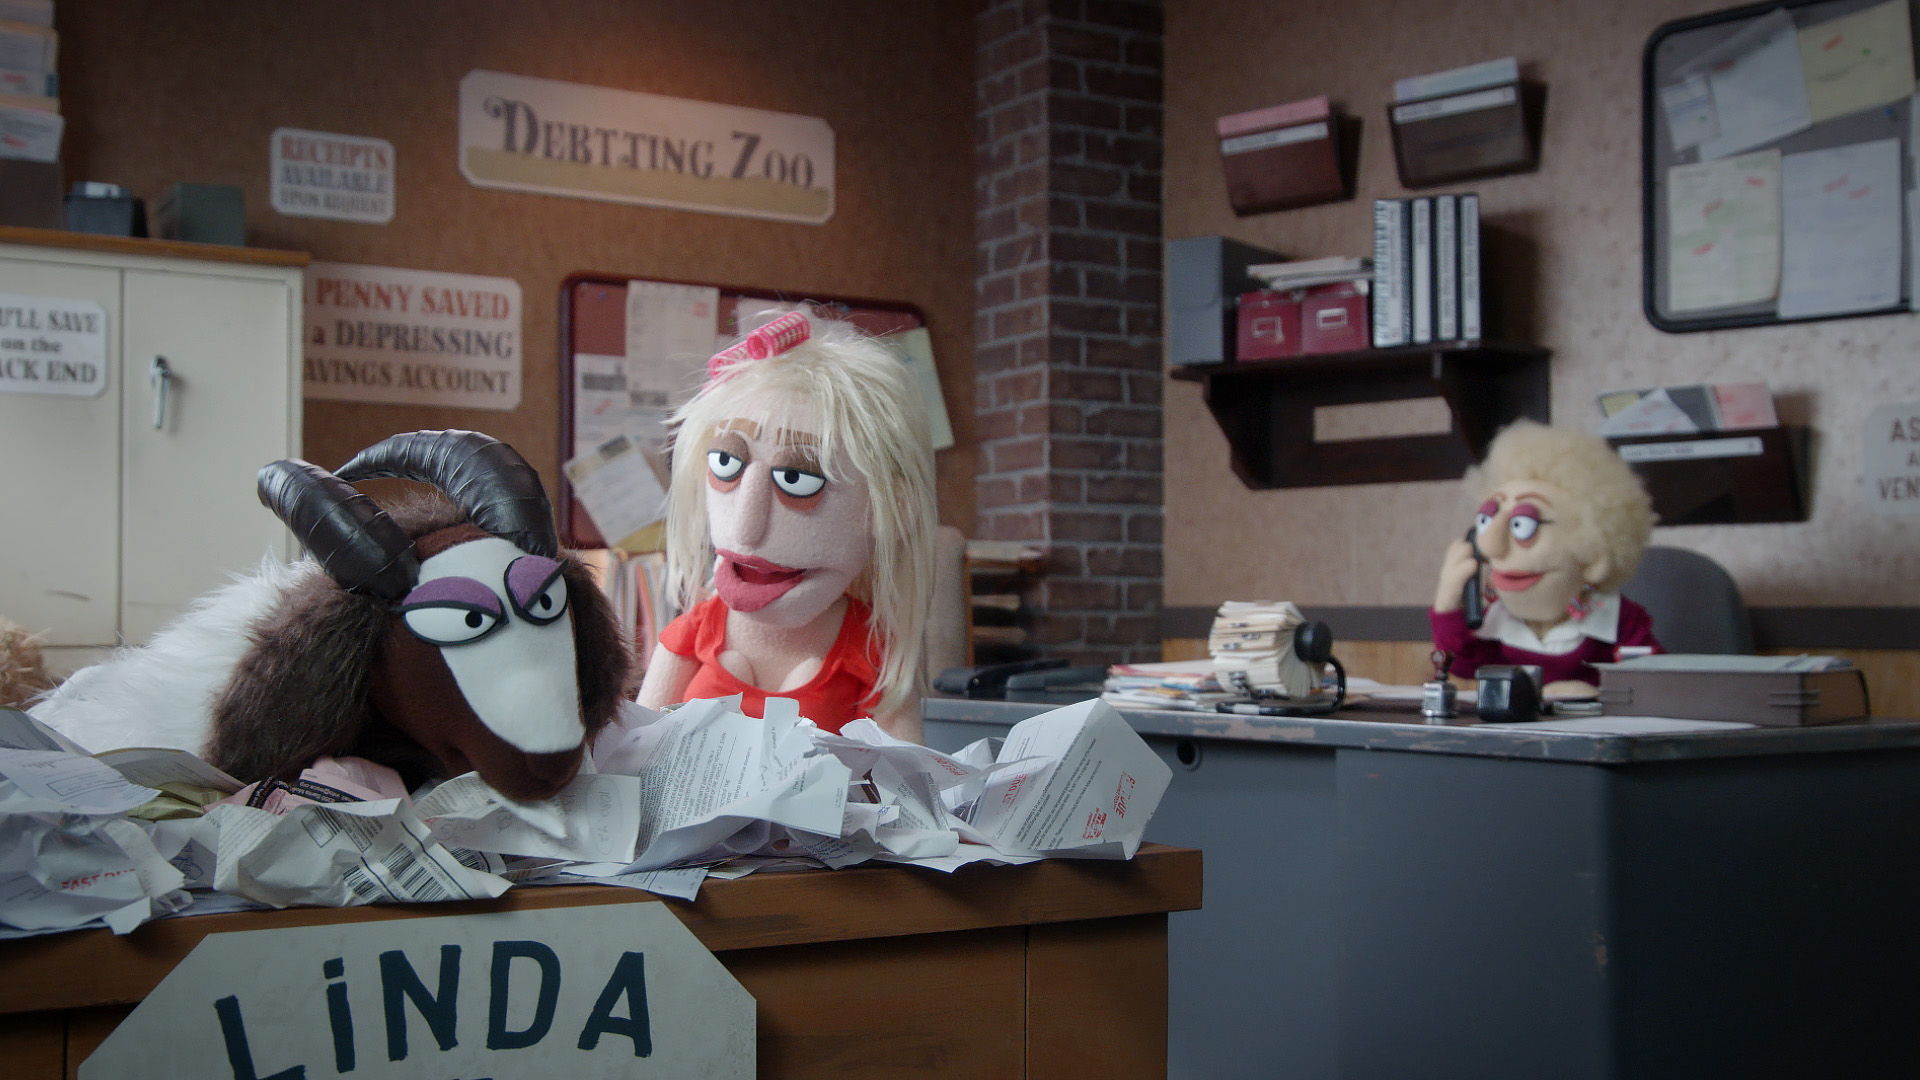 Linda the debt consolidating goat from a scene directed by Todd Bishop for Comedy Central's Crank Yankers